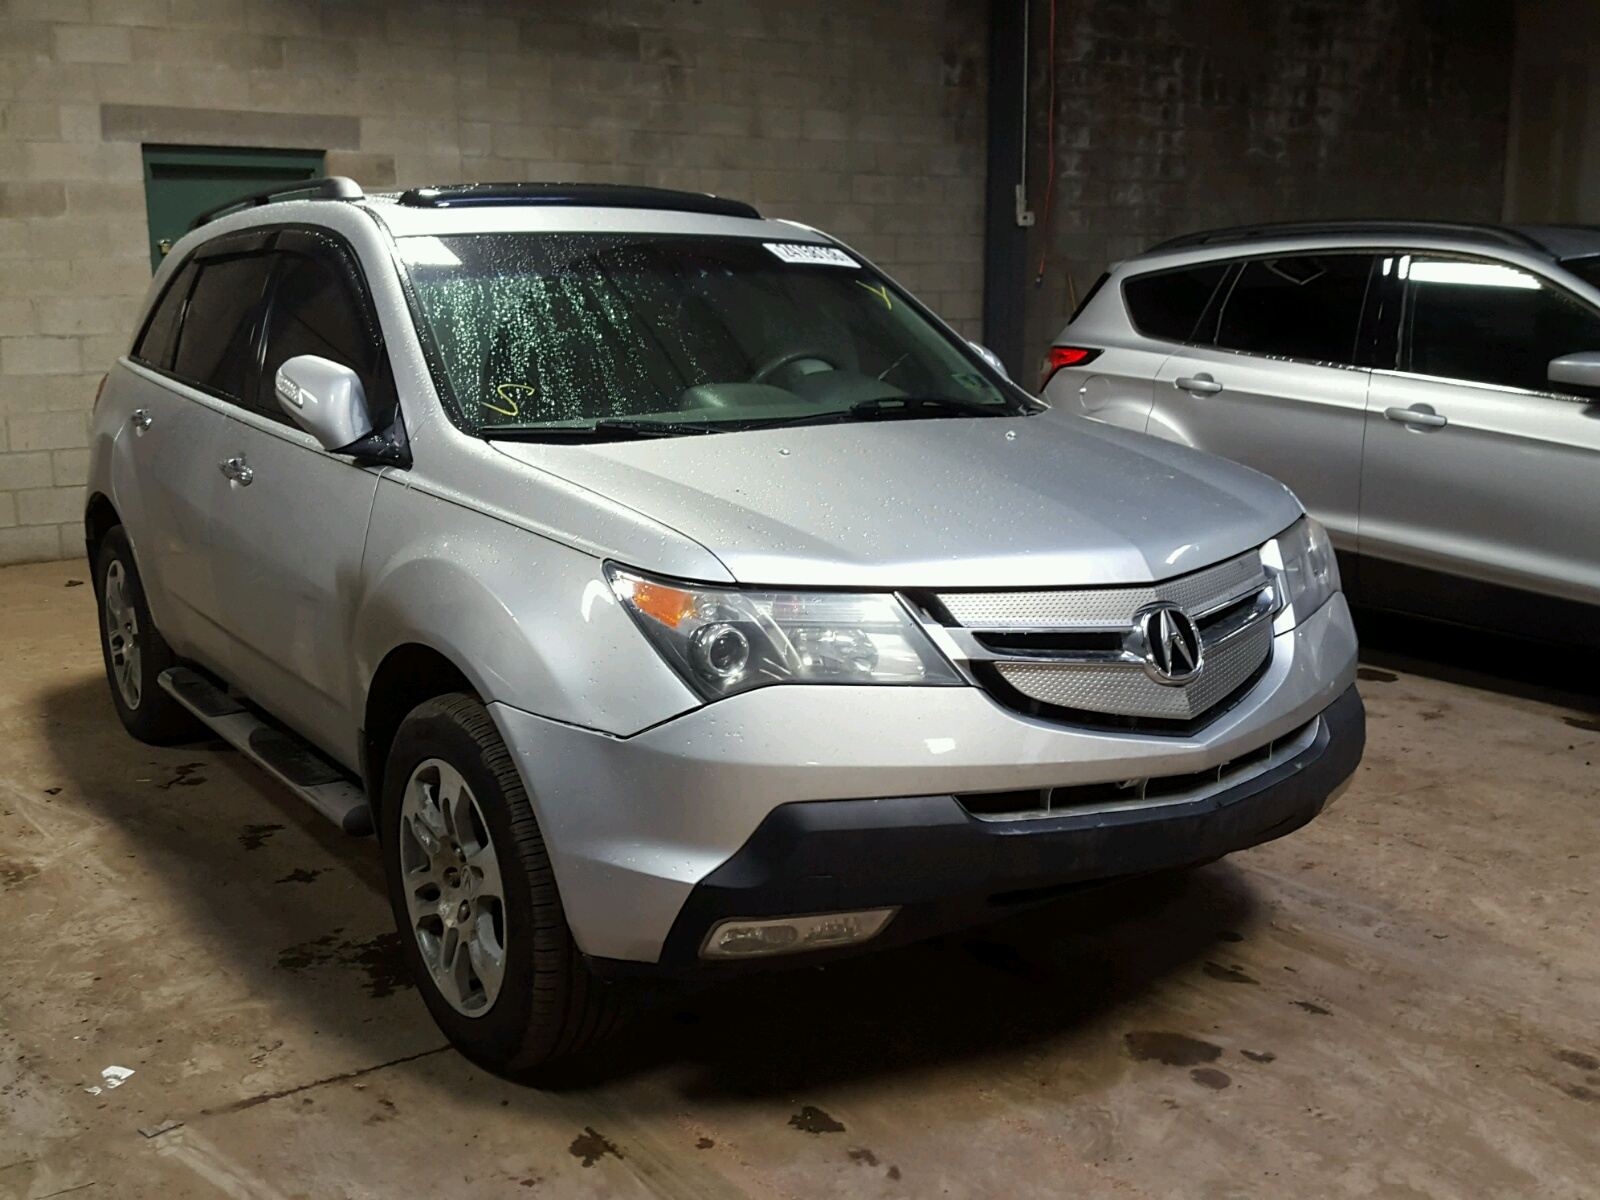 acura at cars rochelle for img used sale park in dealers nj auto ave mdx com